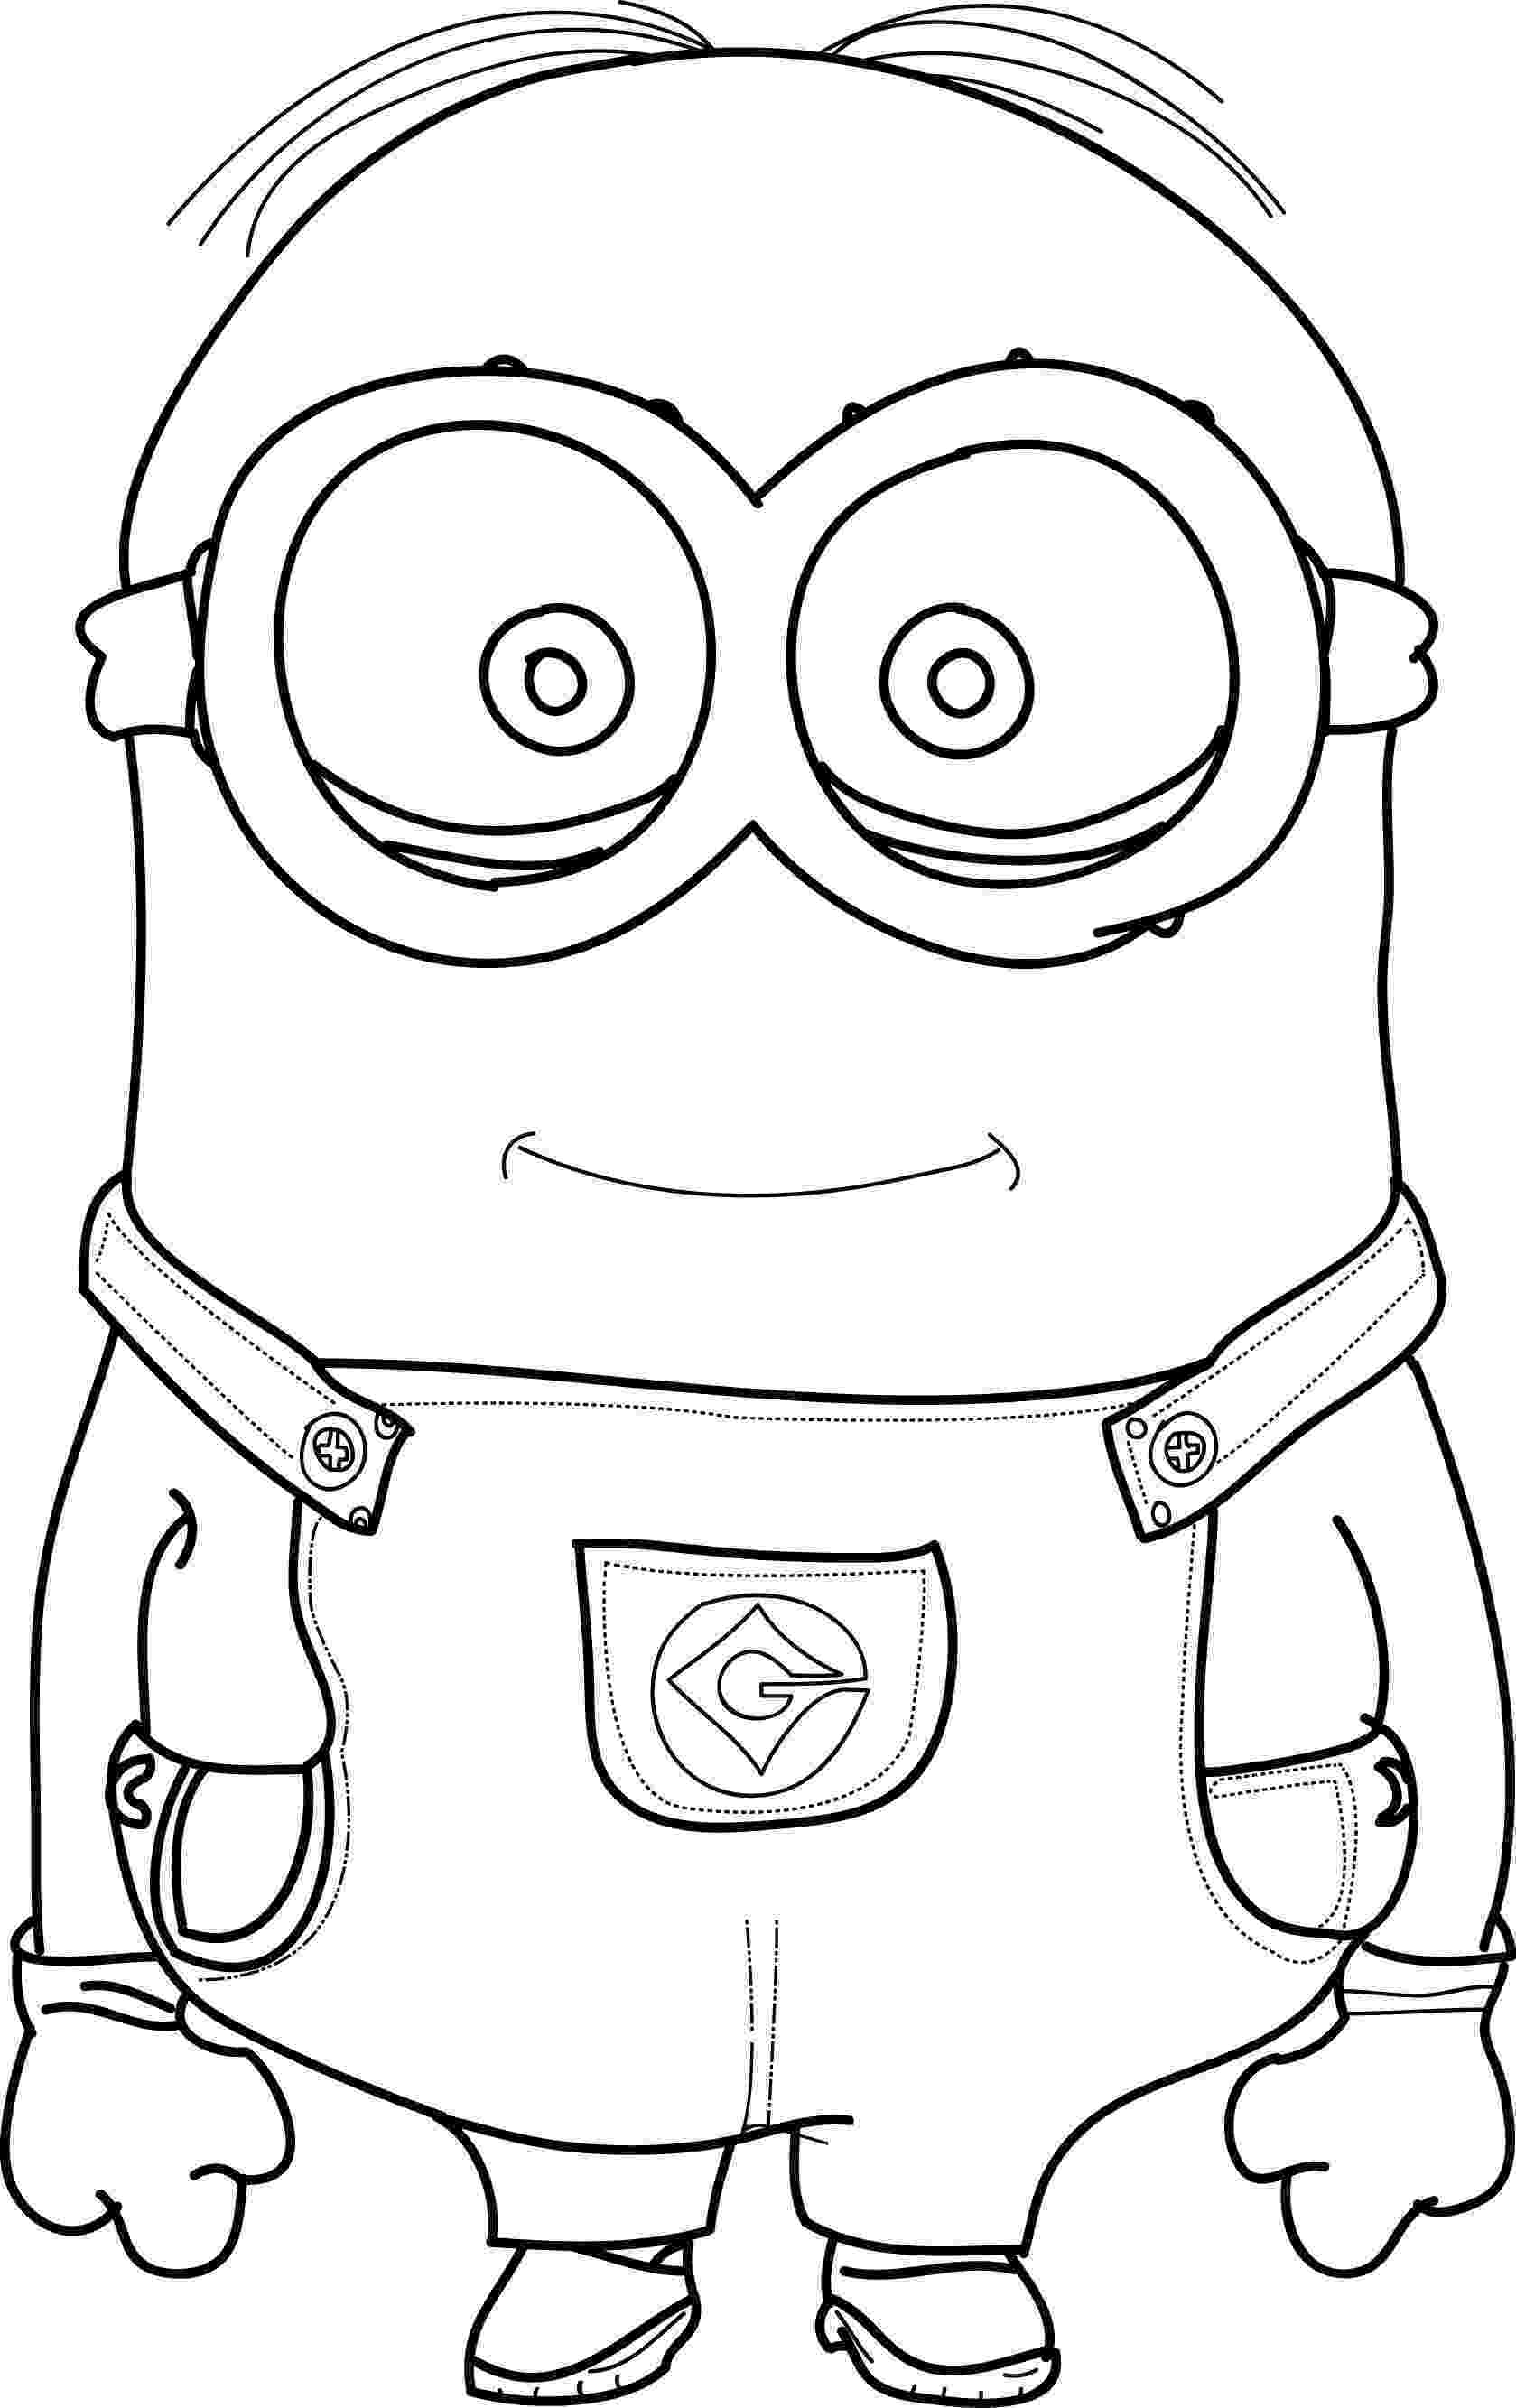 pictures of minions to color angry captain minion coloring page wecoloringpagecom pictures to of minions color